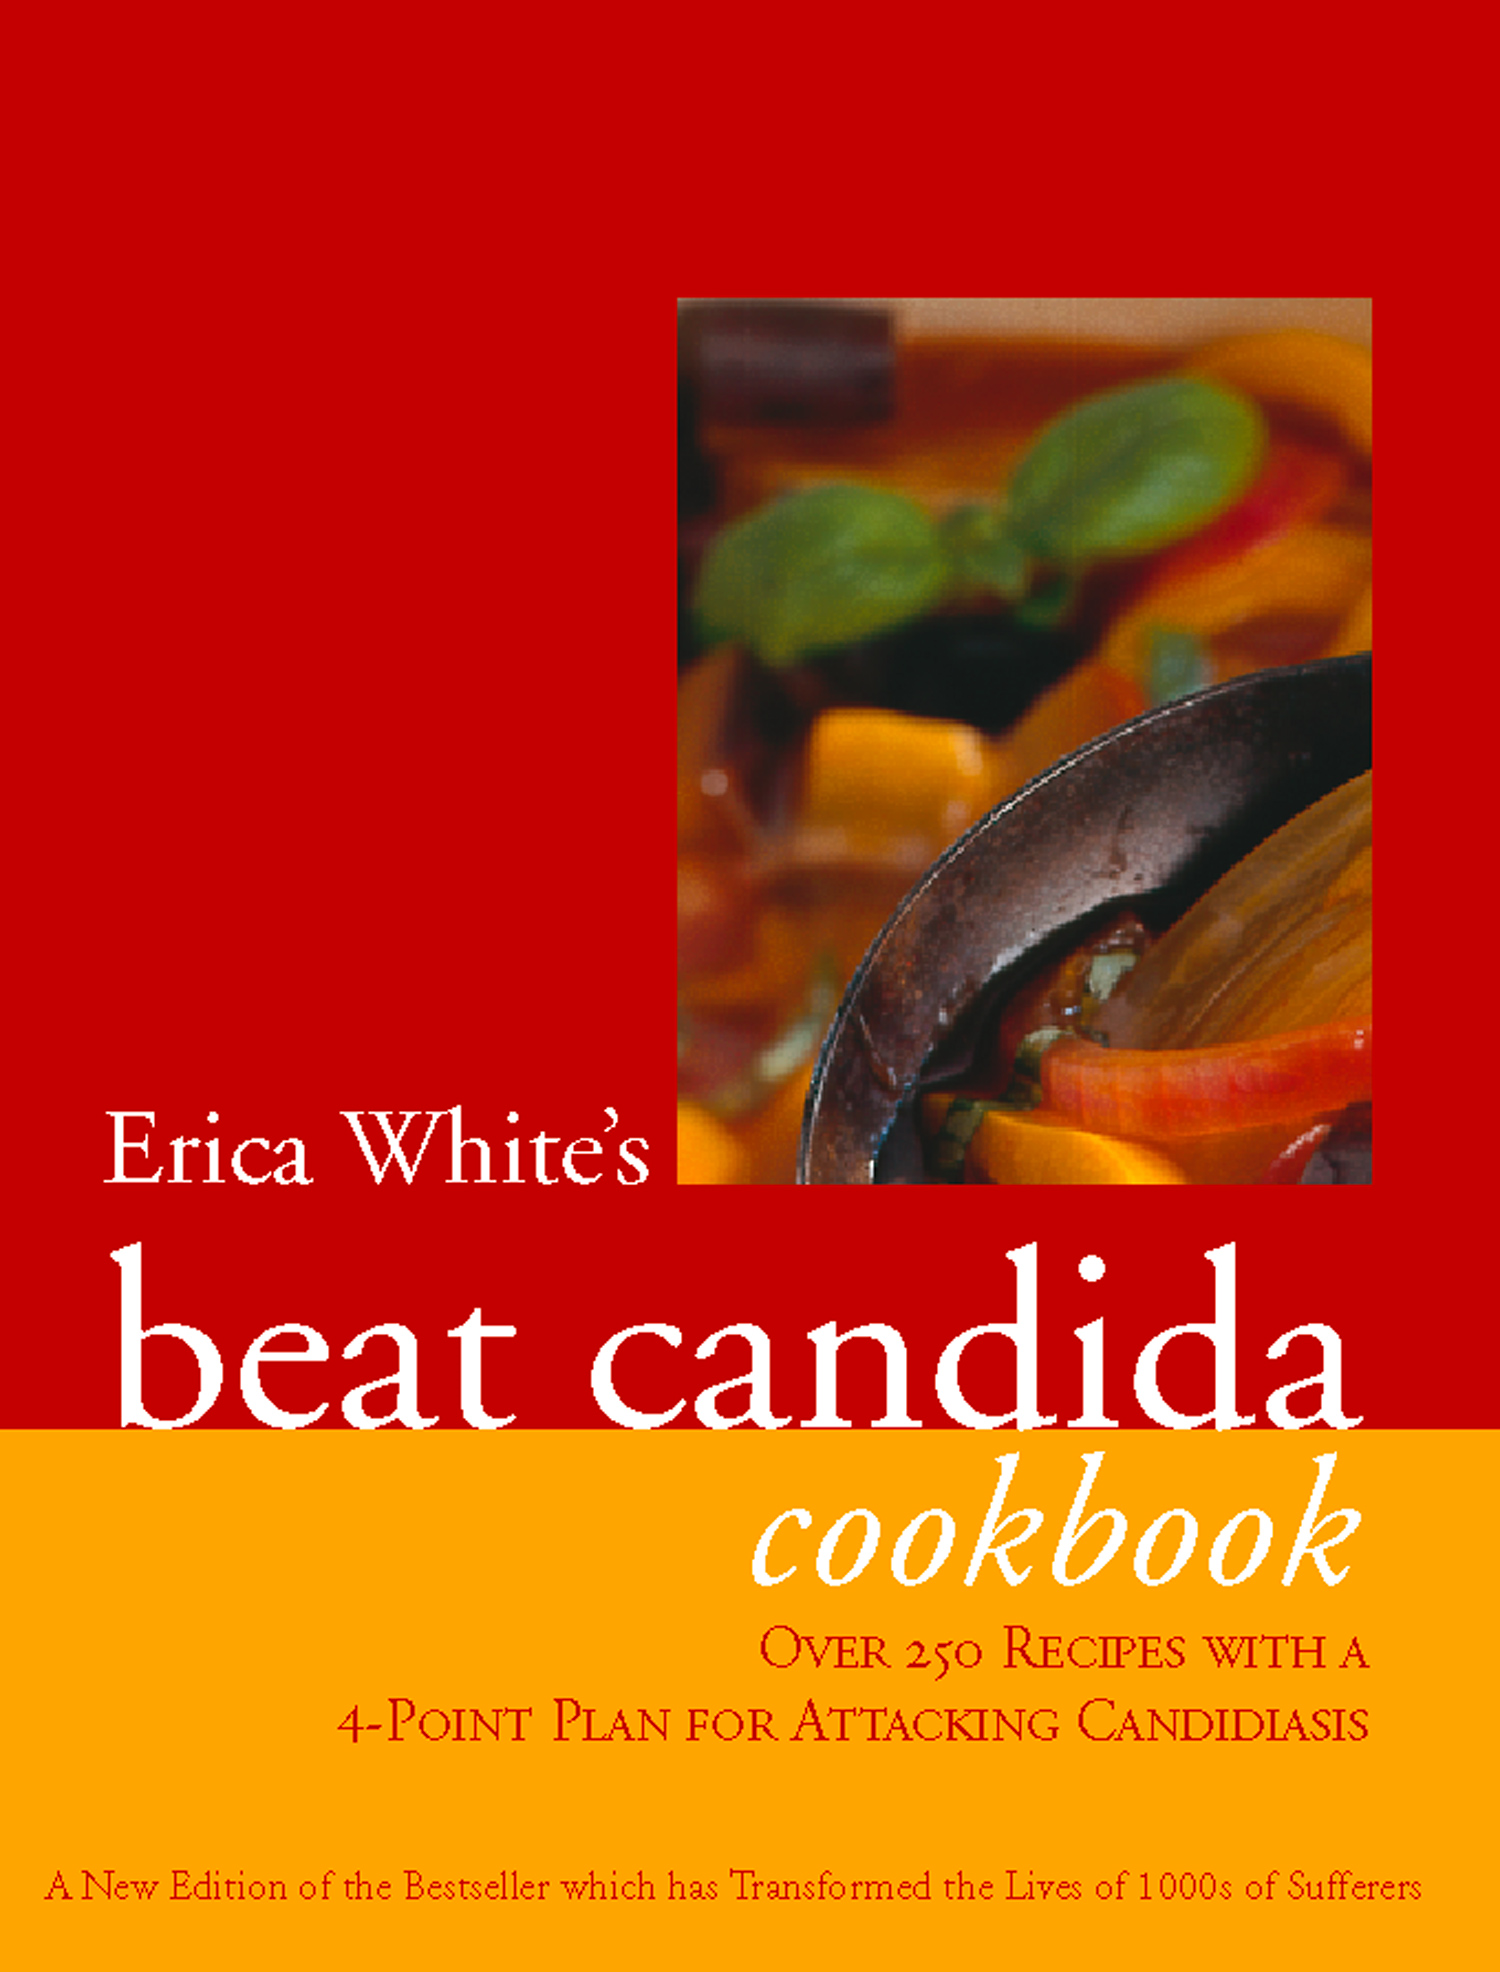 Erica White?s Beat Candida Cookbook: Over 250 recipes with a 4-point plan for attacking candidiasis